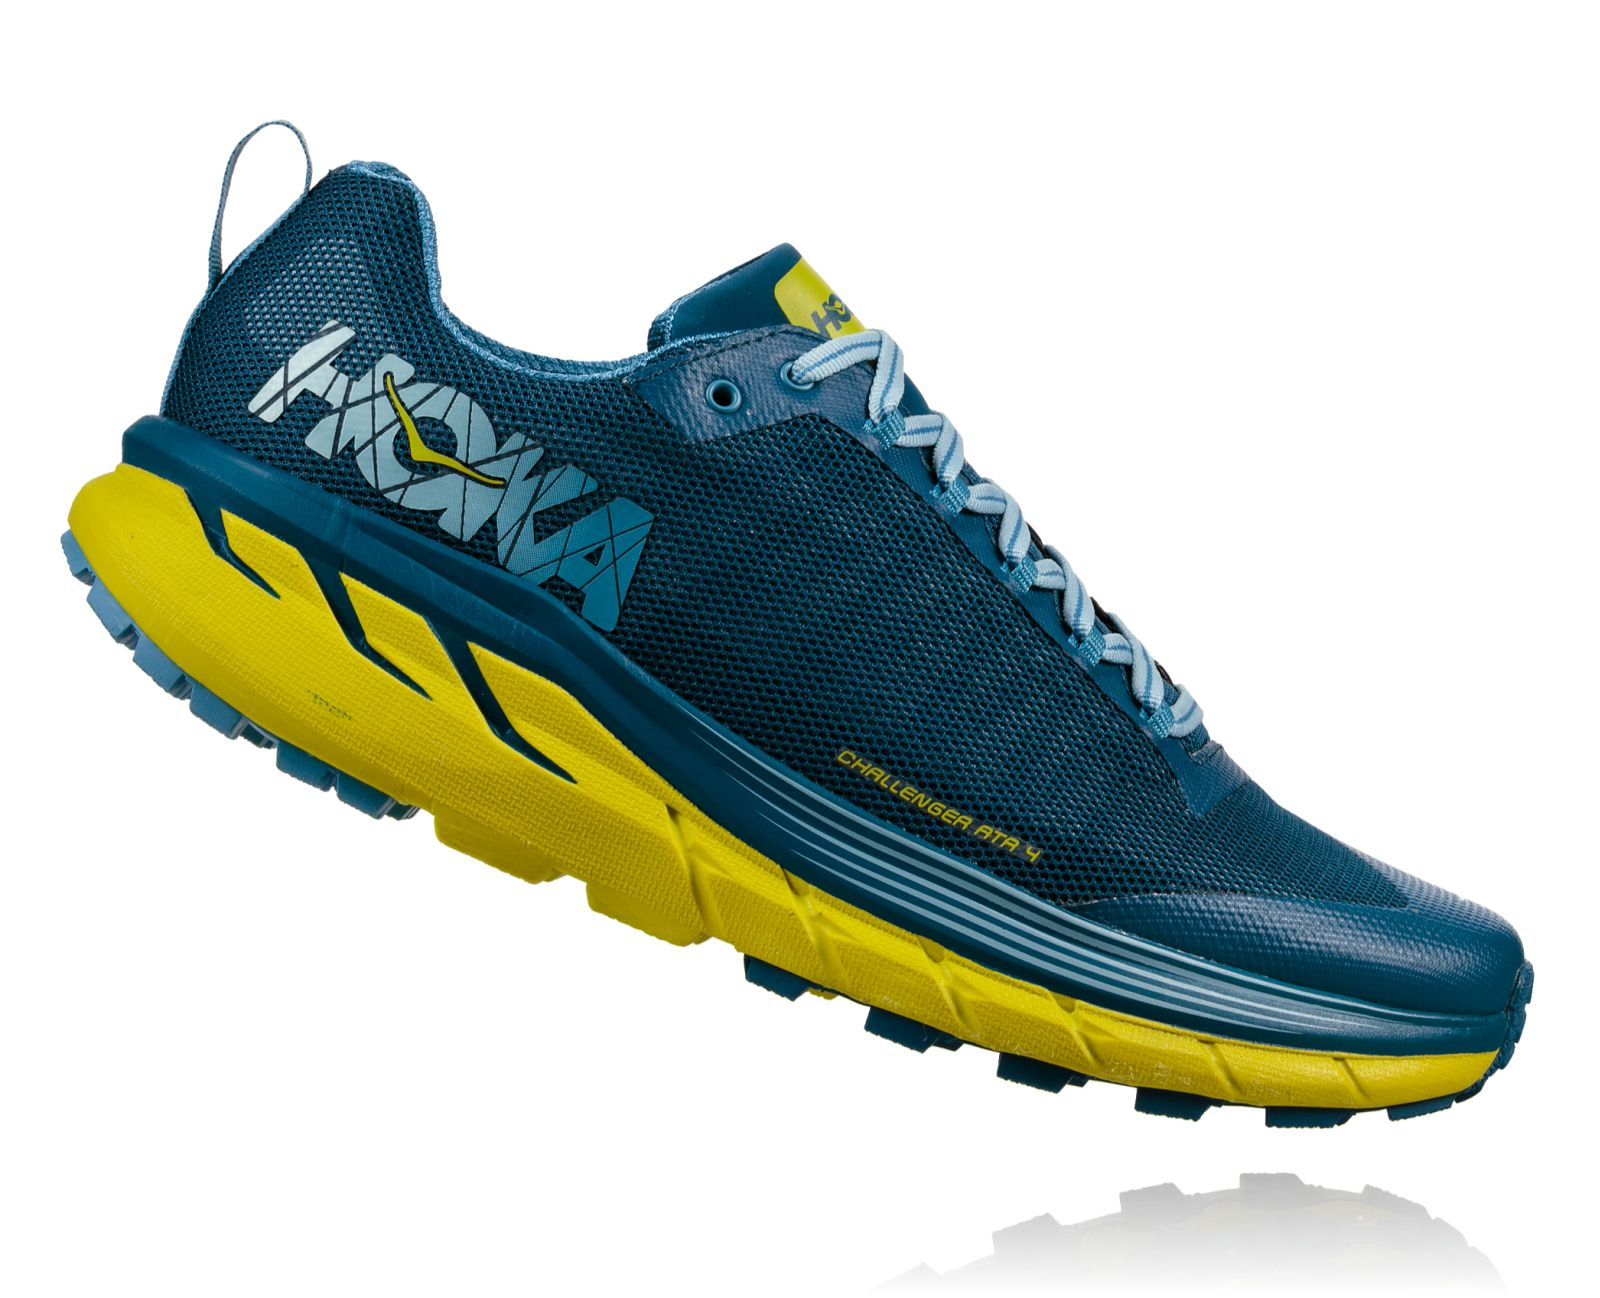 sports shoes 82037 010a8 Hoka ONE ONE released details on key Spring 2018 models today. Post will be  updated with stats and details as we receive them. The Fly.